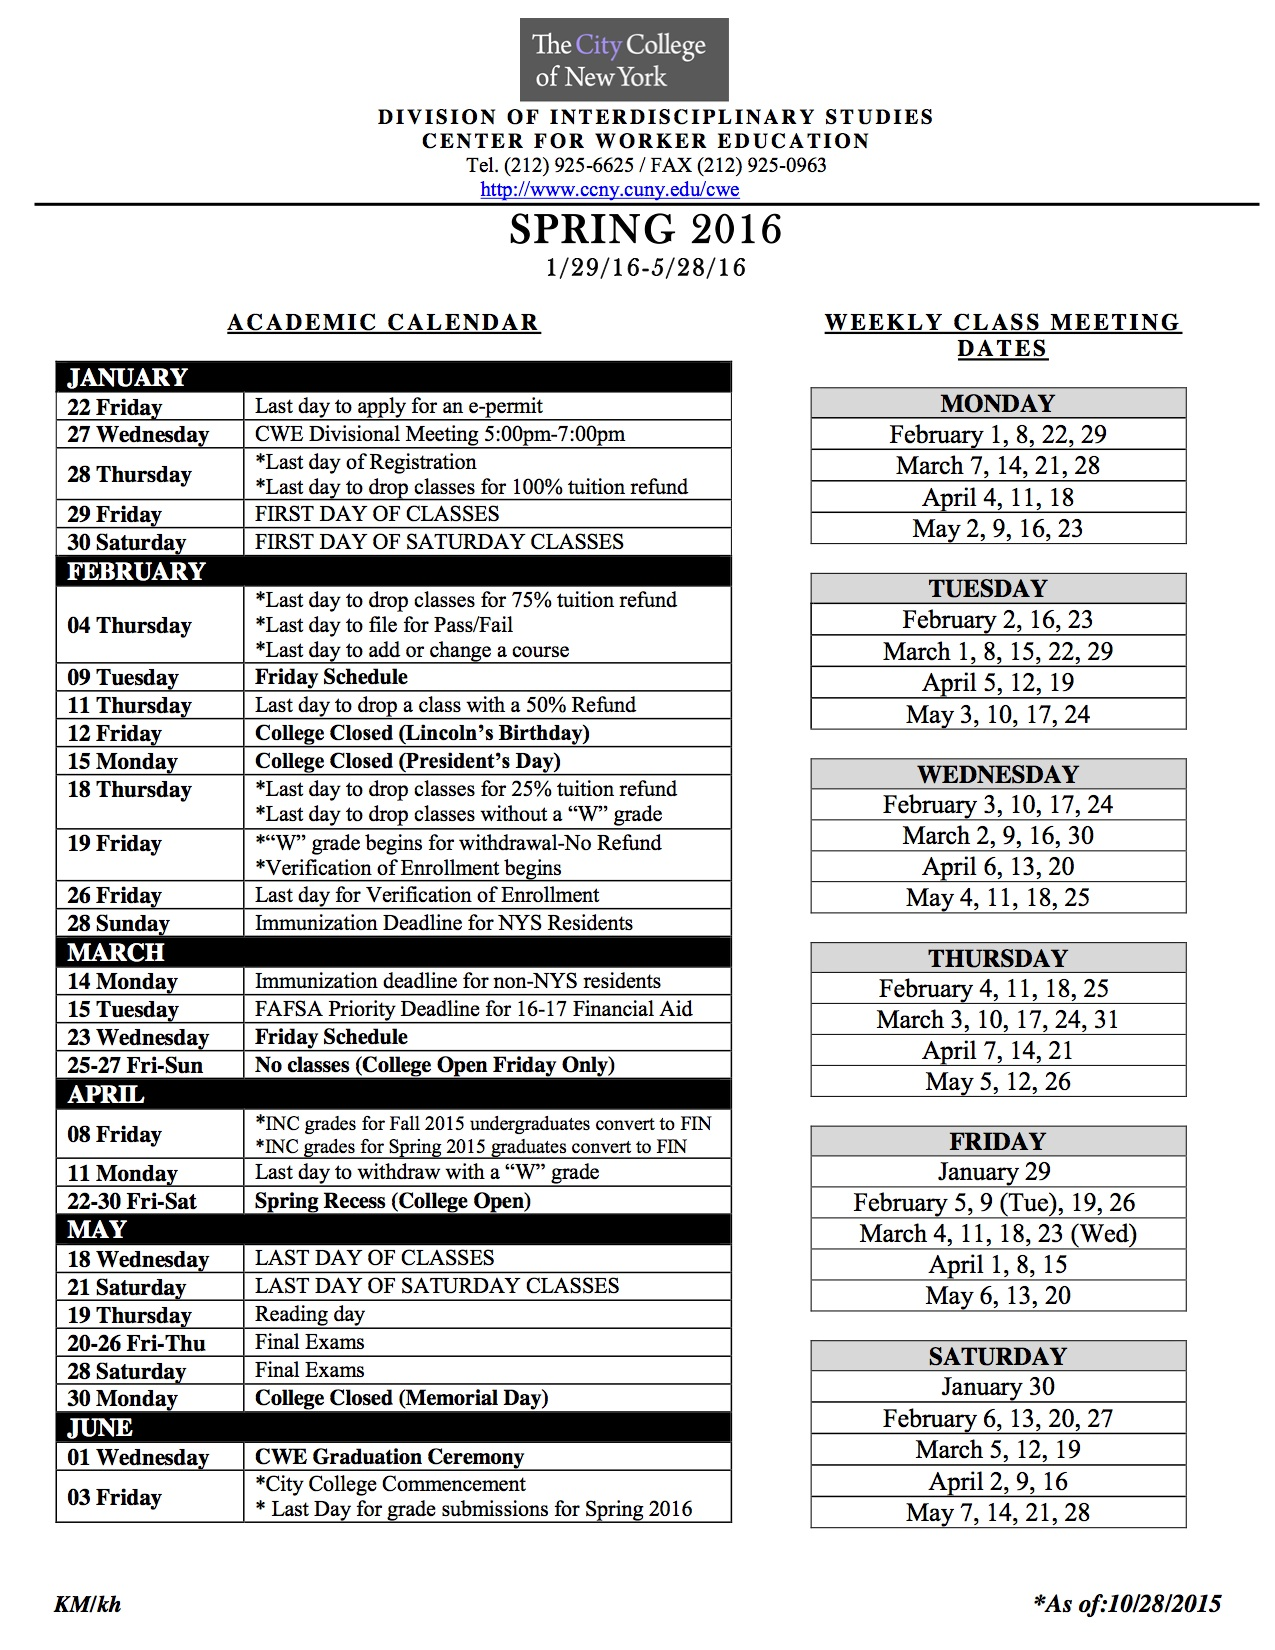 Cuny 2021 Spring Calendar Academic Calendar | The City College of New York